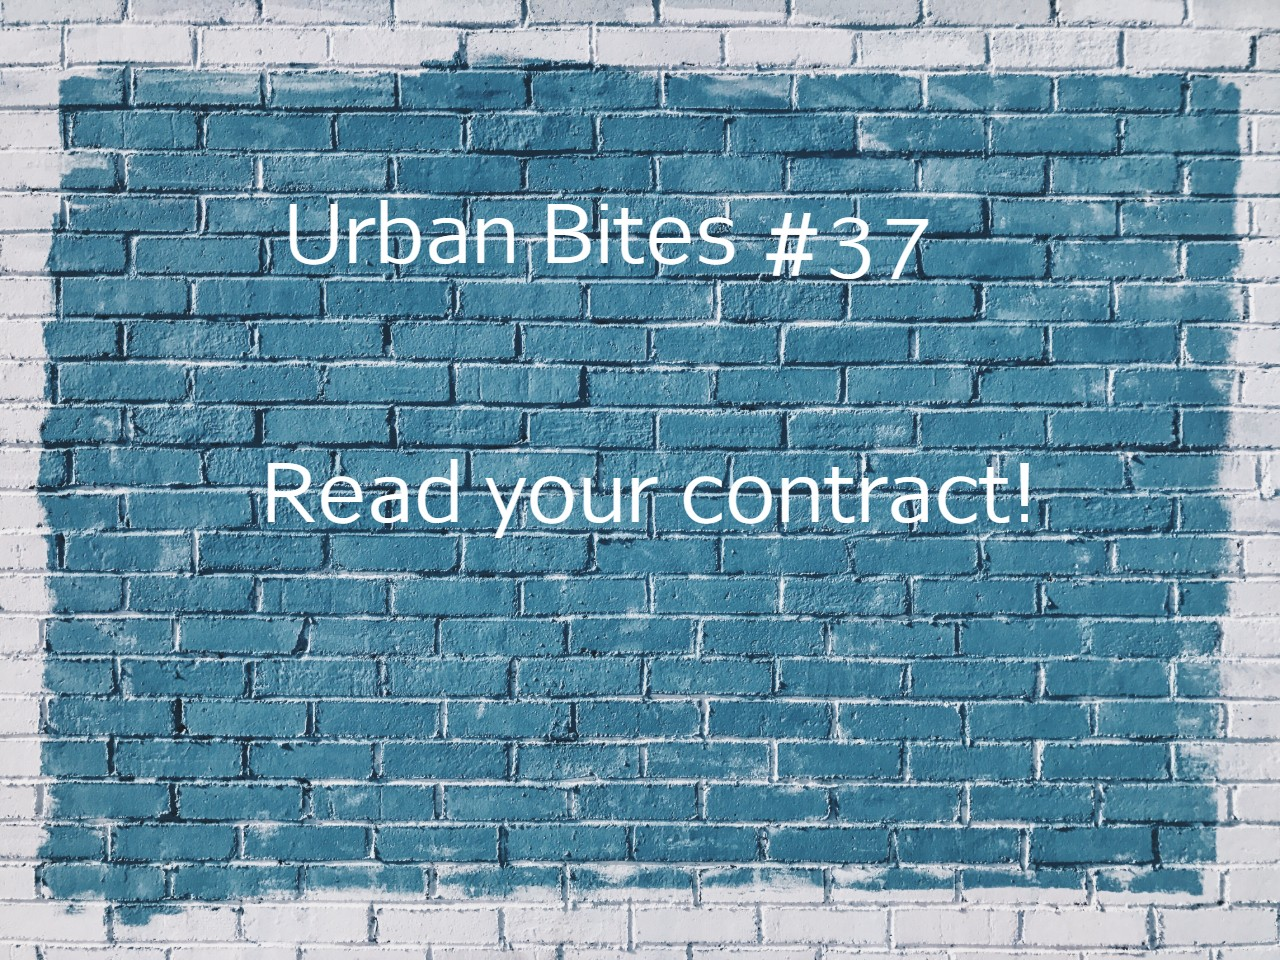 Urban Bites #37 - Read your contract!